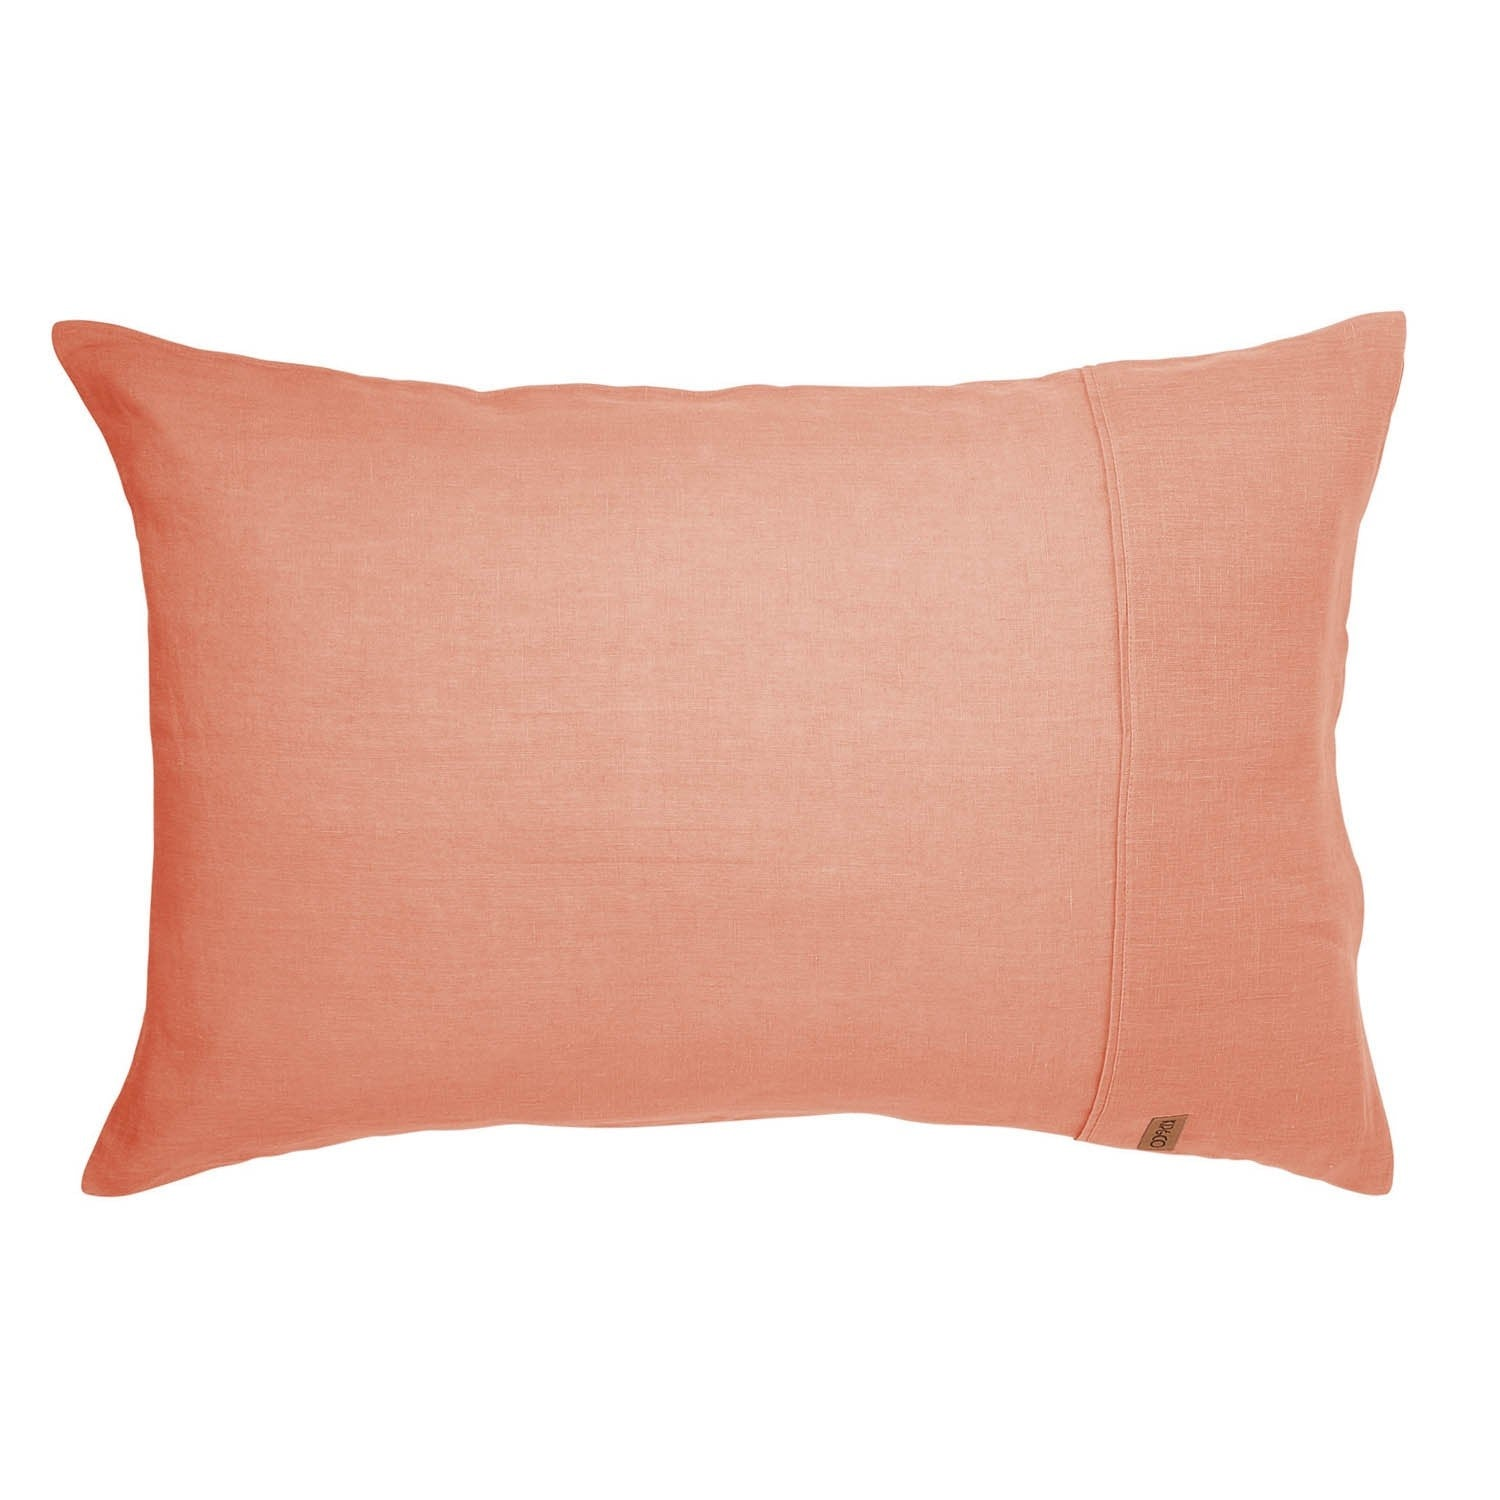 Kip & Co Bellini Linen Pillowcase 2P Set - The Artisan Storeroom